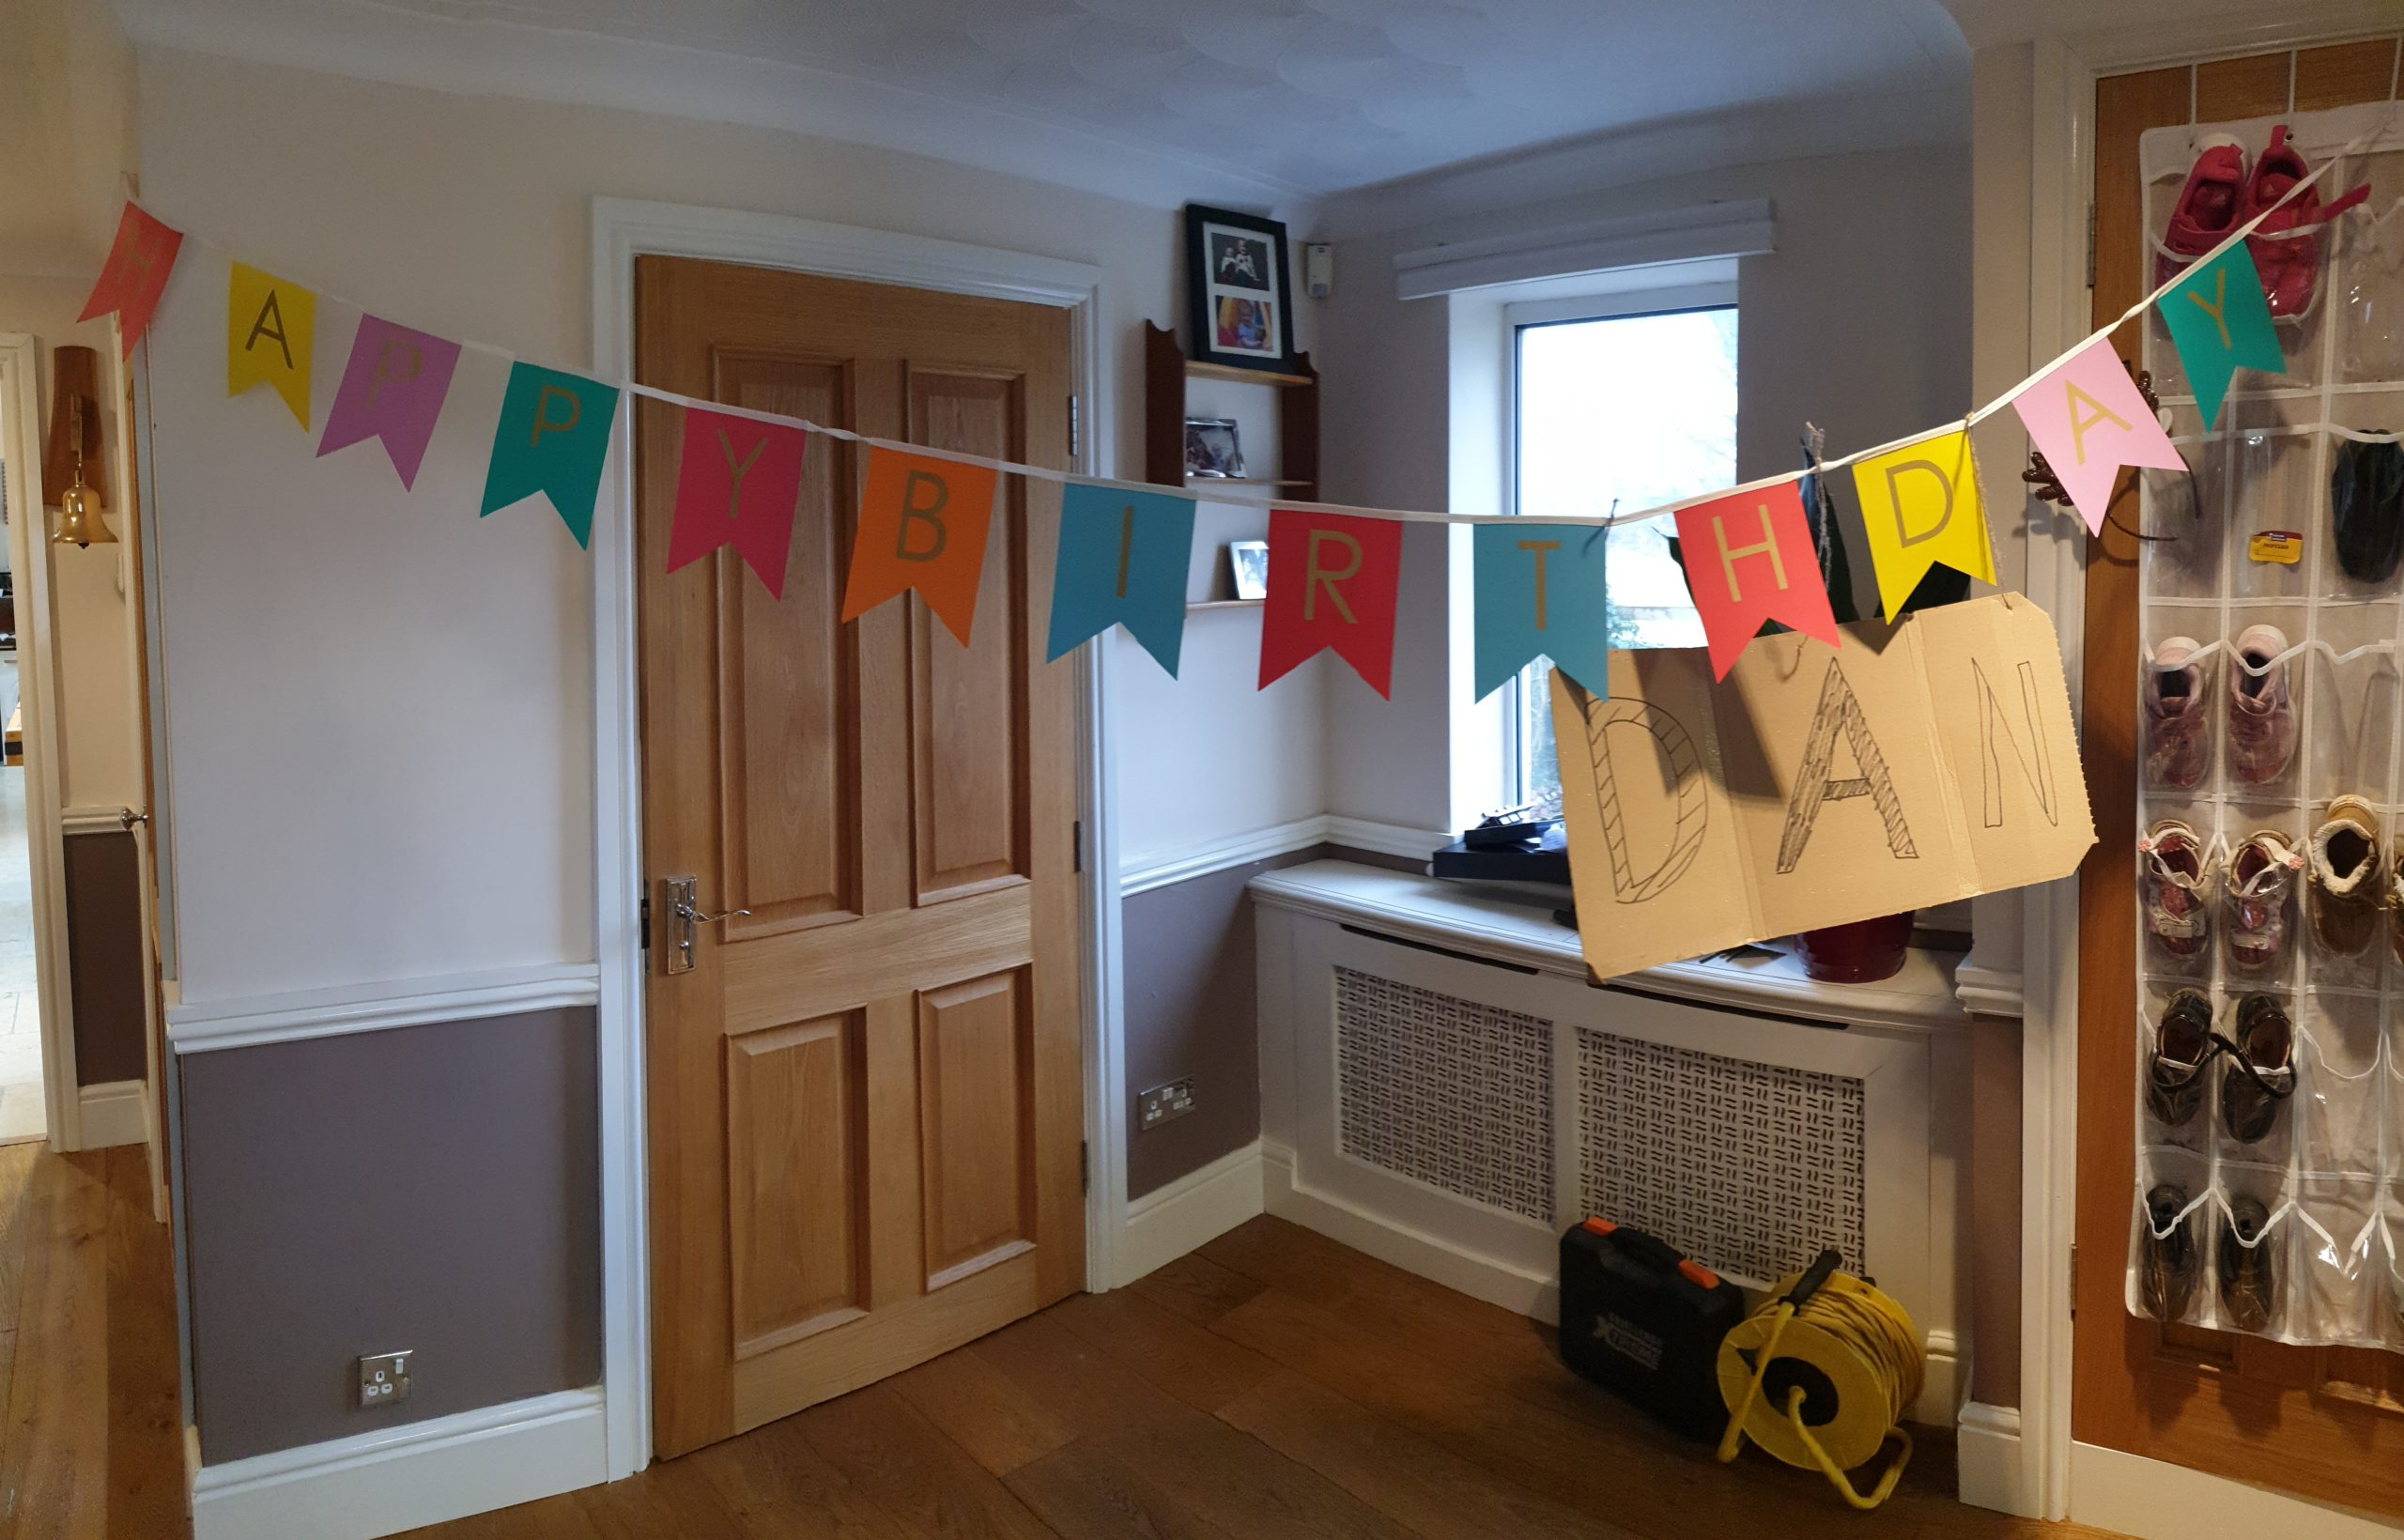 "Happy Birthday banner with handwritten cardboard ""Dan"" sign hung underneath."